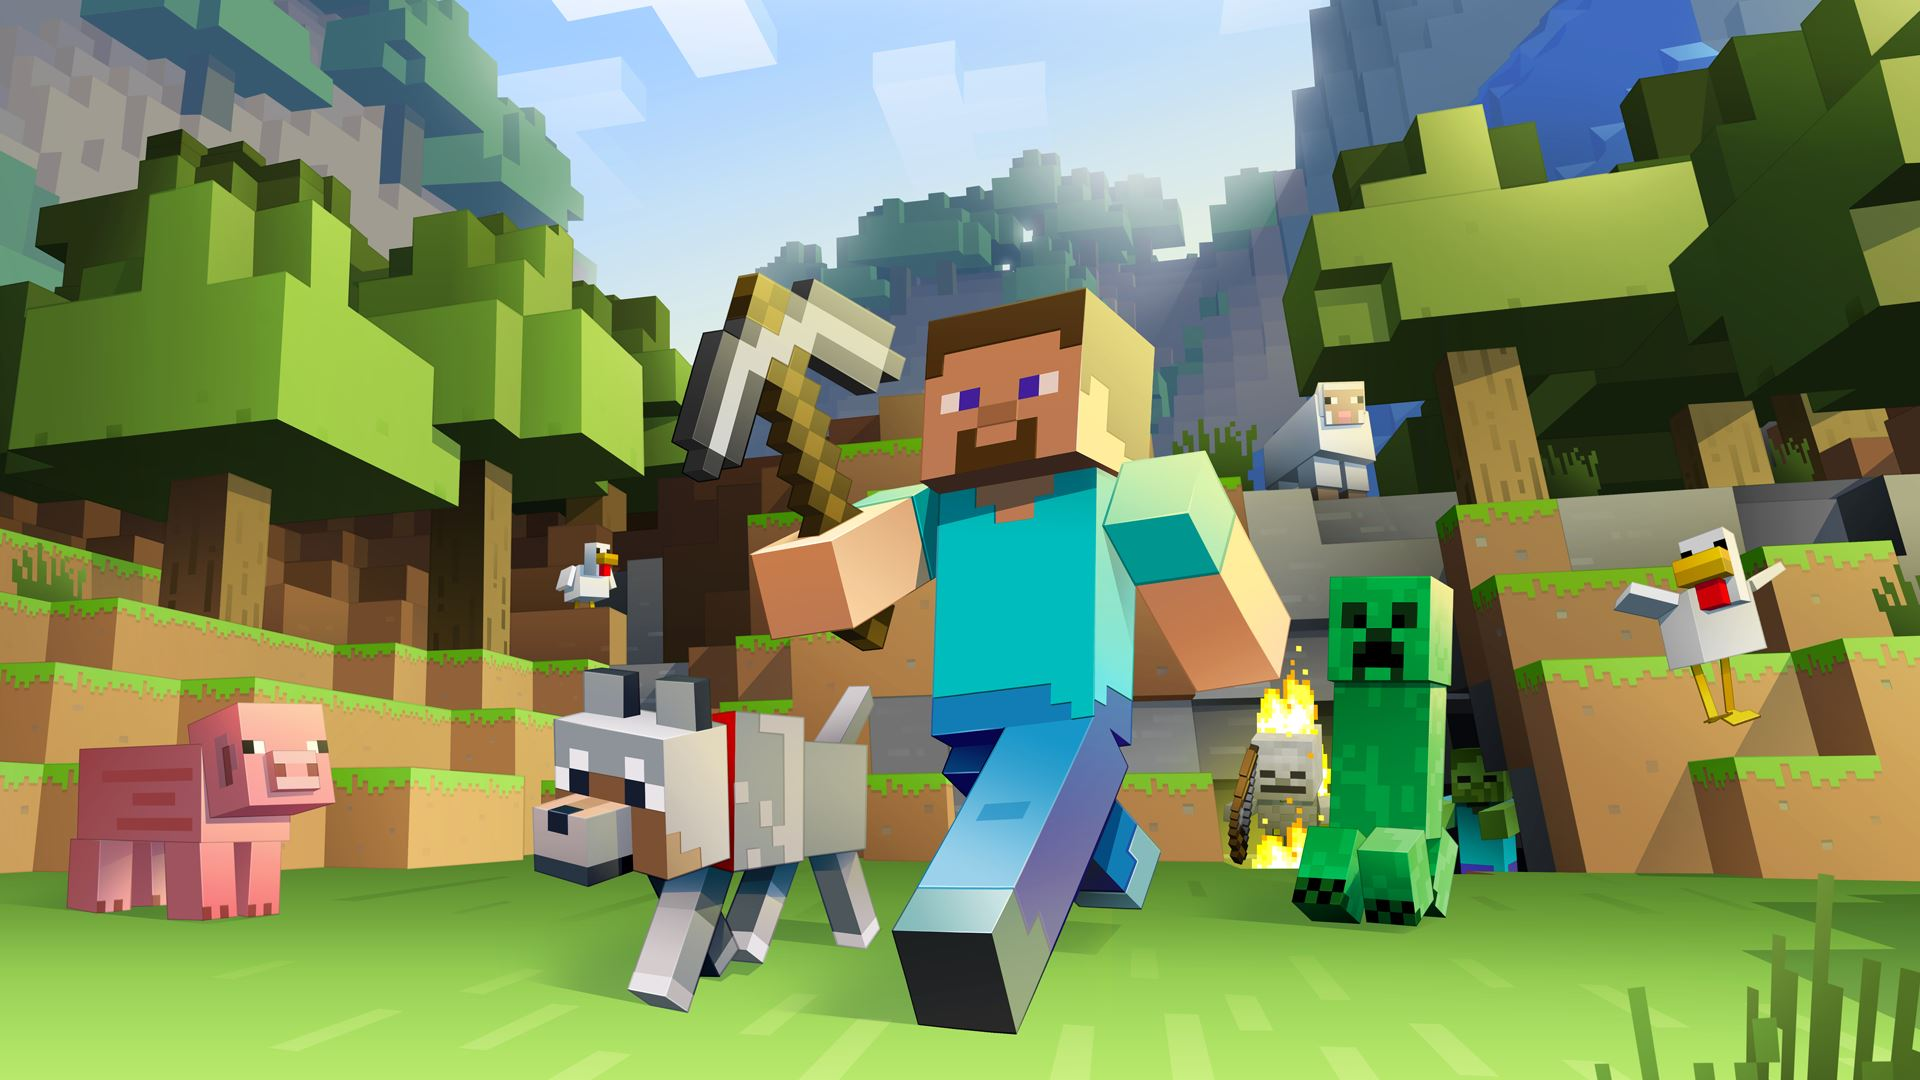 Can You Dig It FACT meets Minecraft composer C418 1920x1080